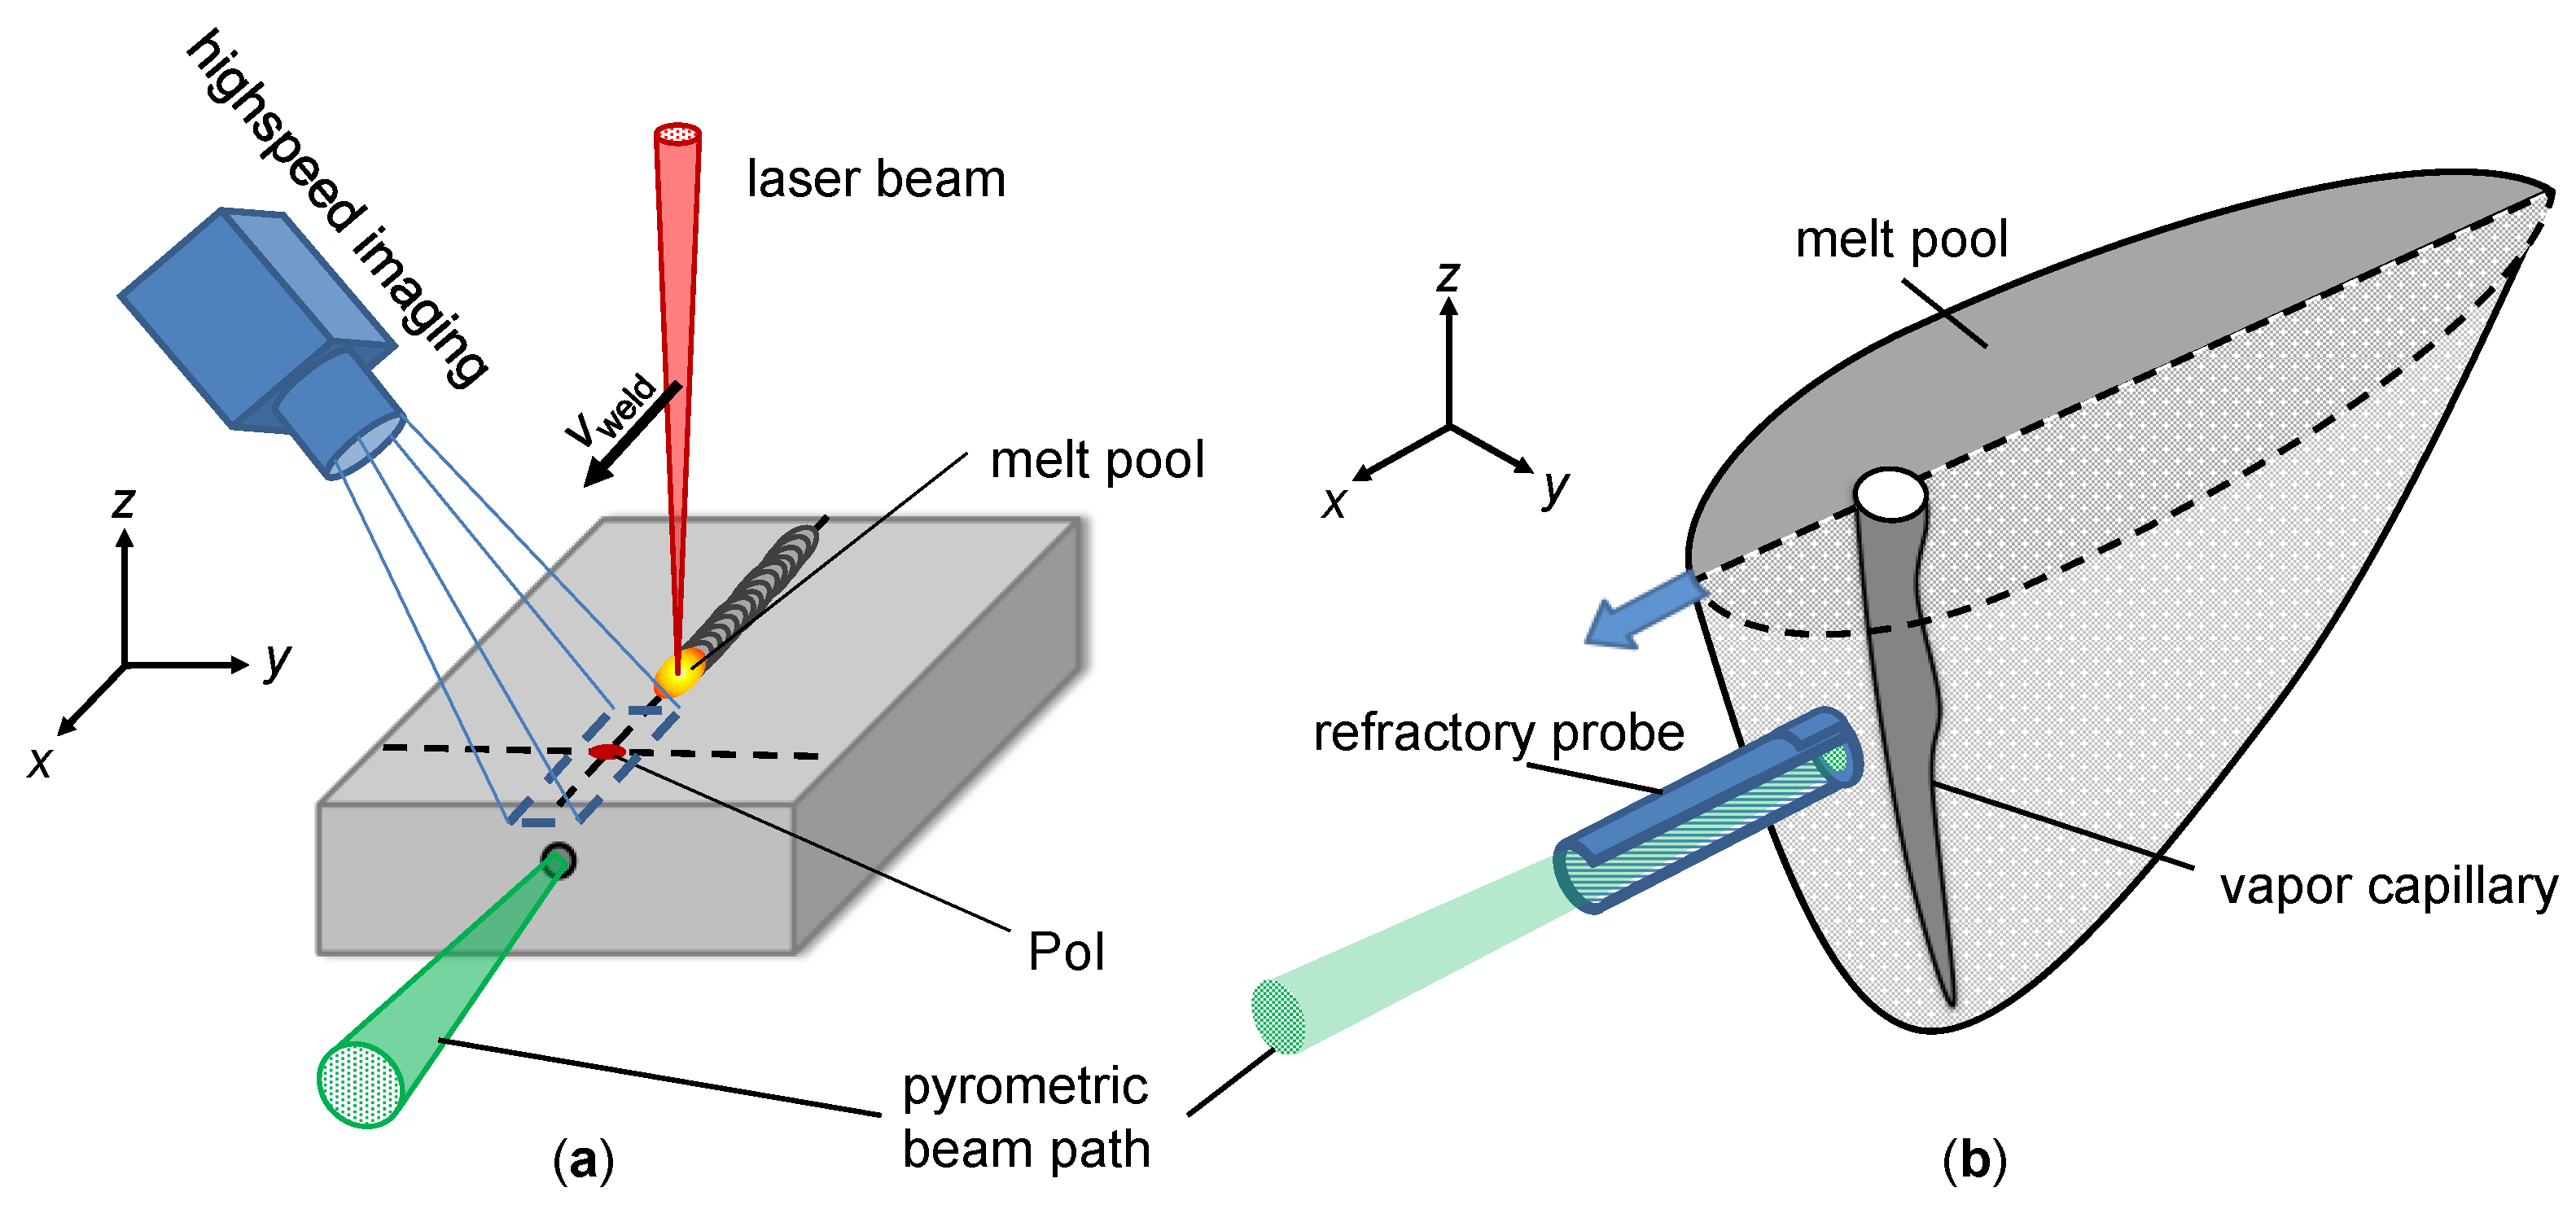 Applied Sciences Free Full Text An Experimental Approach For The Direct Measurement Of Temperatures In The Vicinity Of The Keyhole Front Wall During Deep Penetration Laser Welding Html